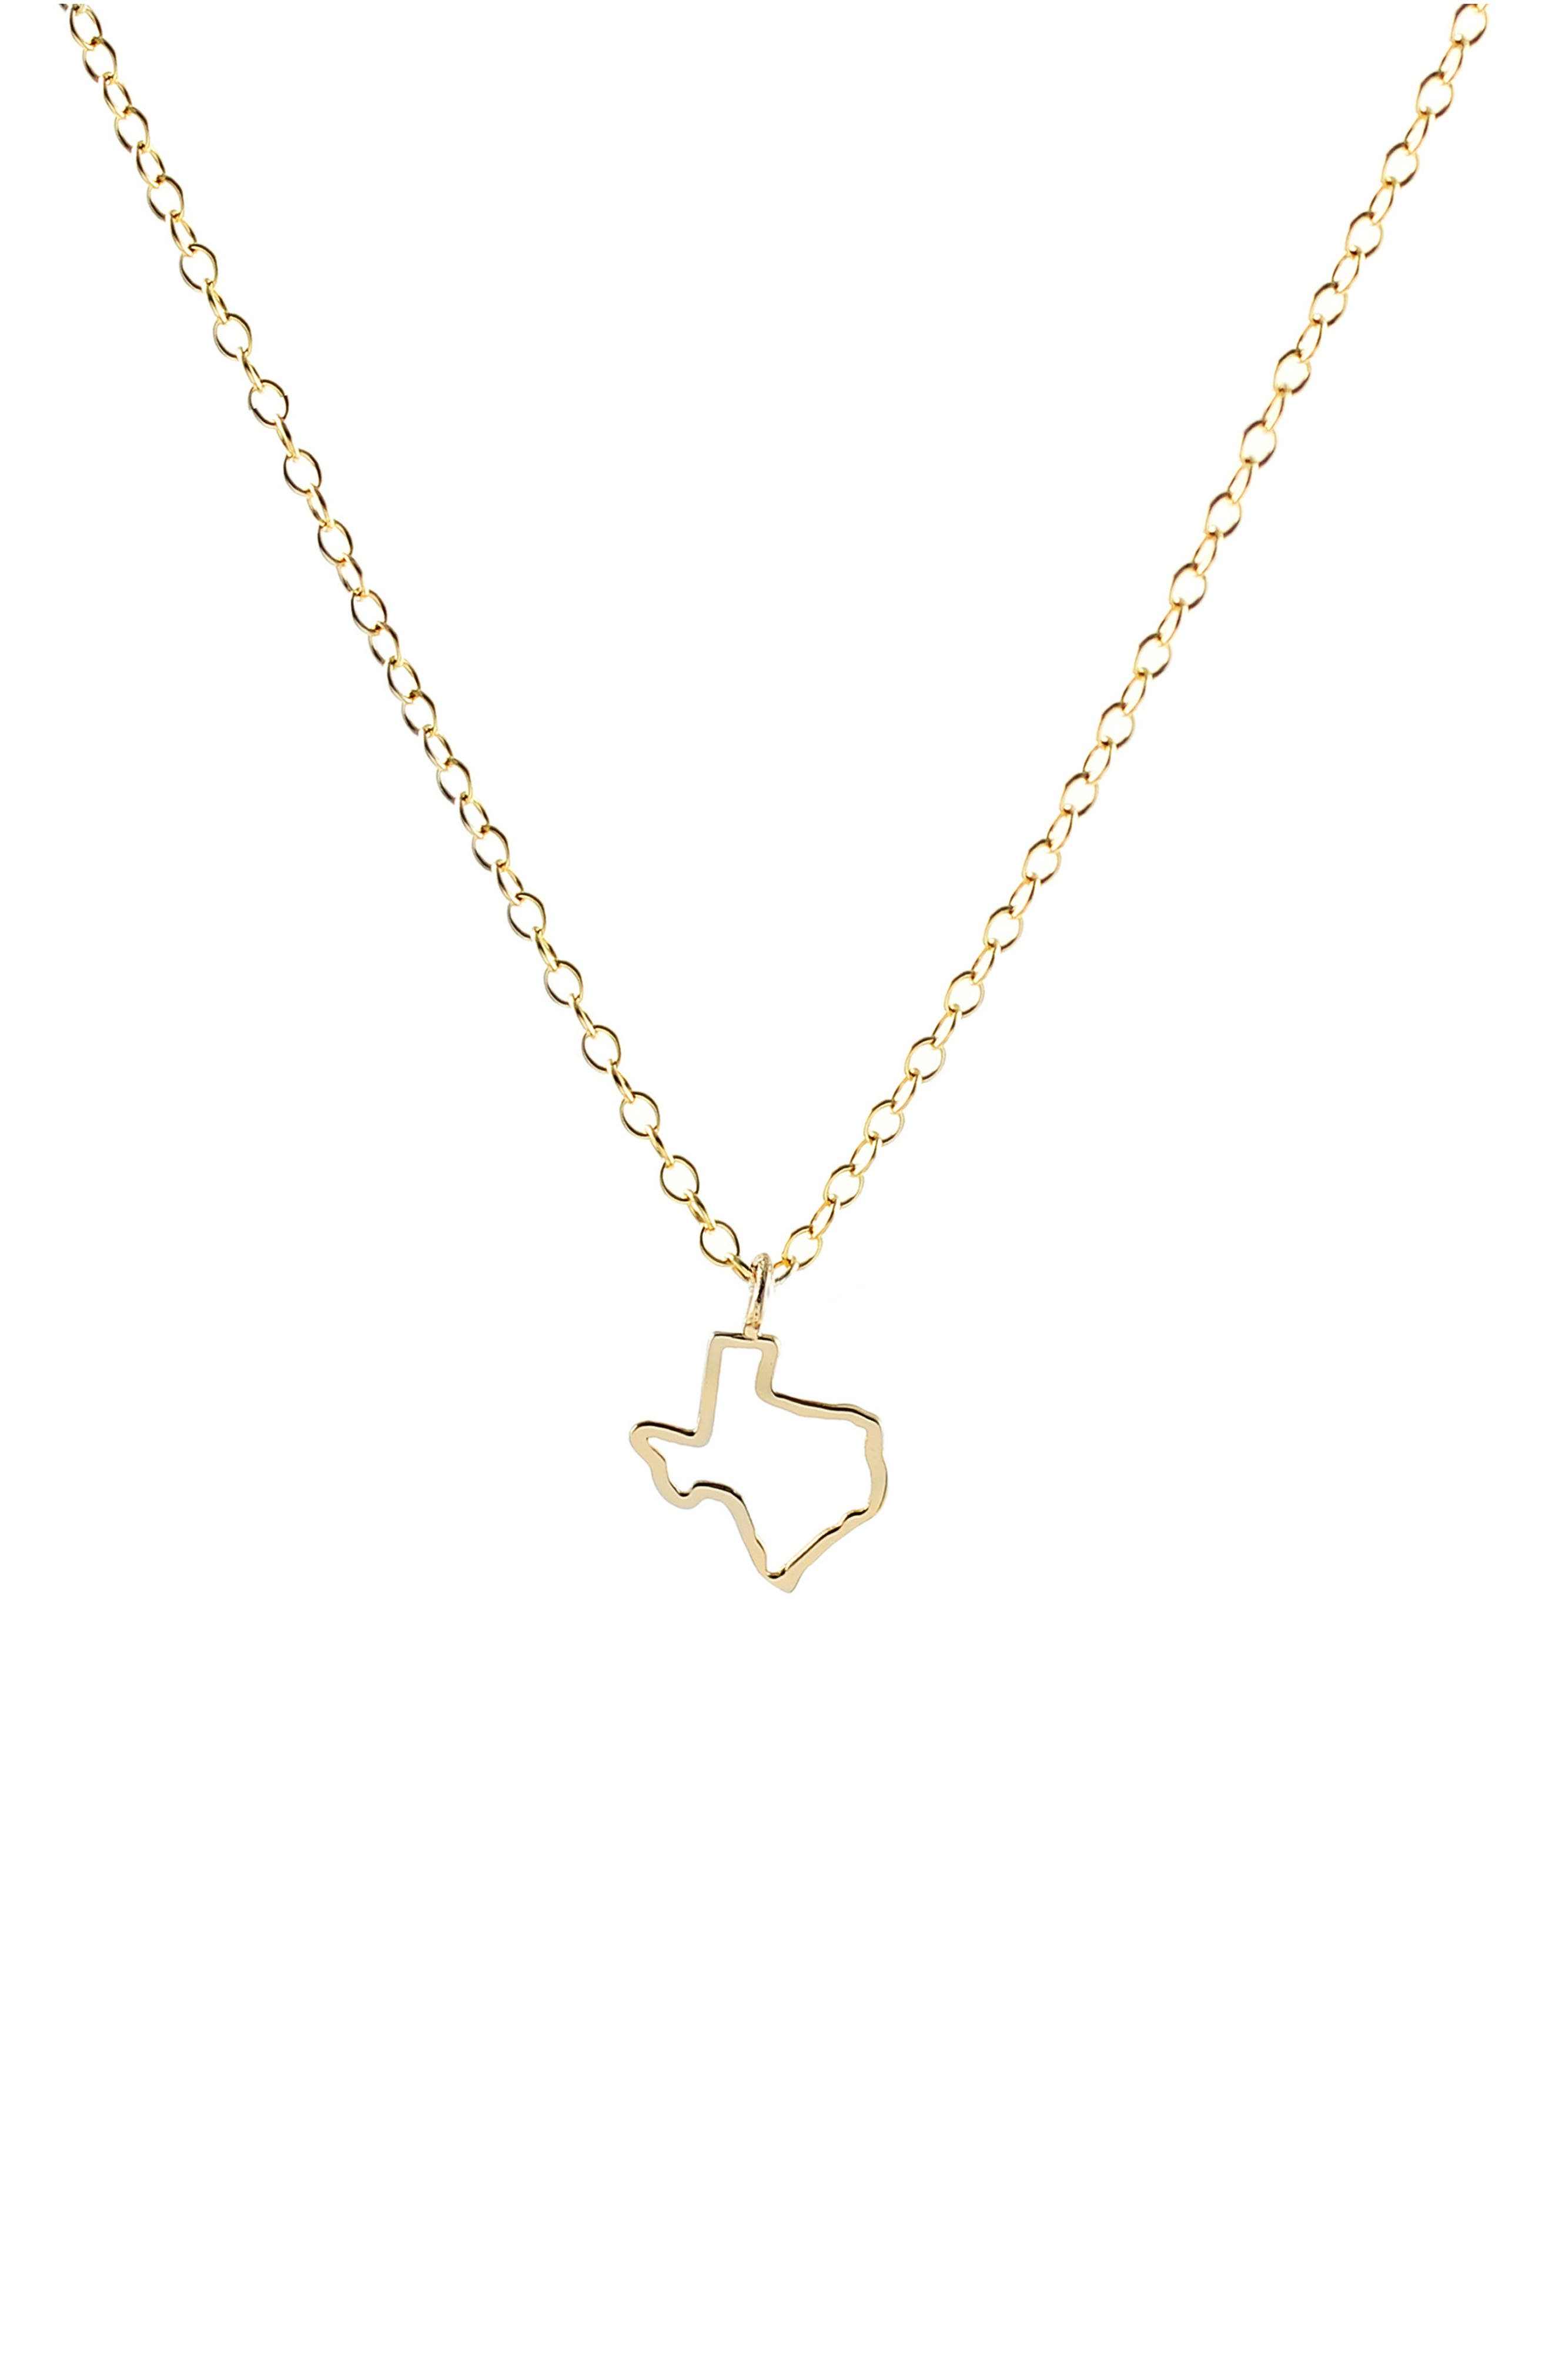 Texas Outline Charm Necklace,                         Main,                         color, Texas - Gold